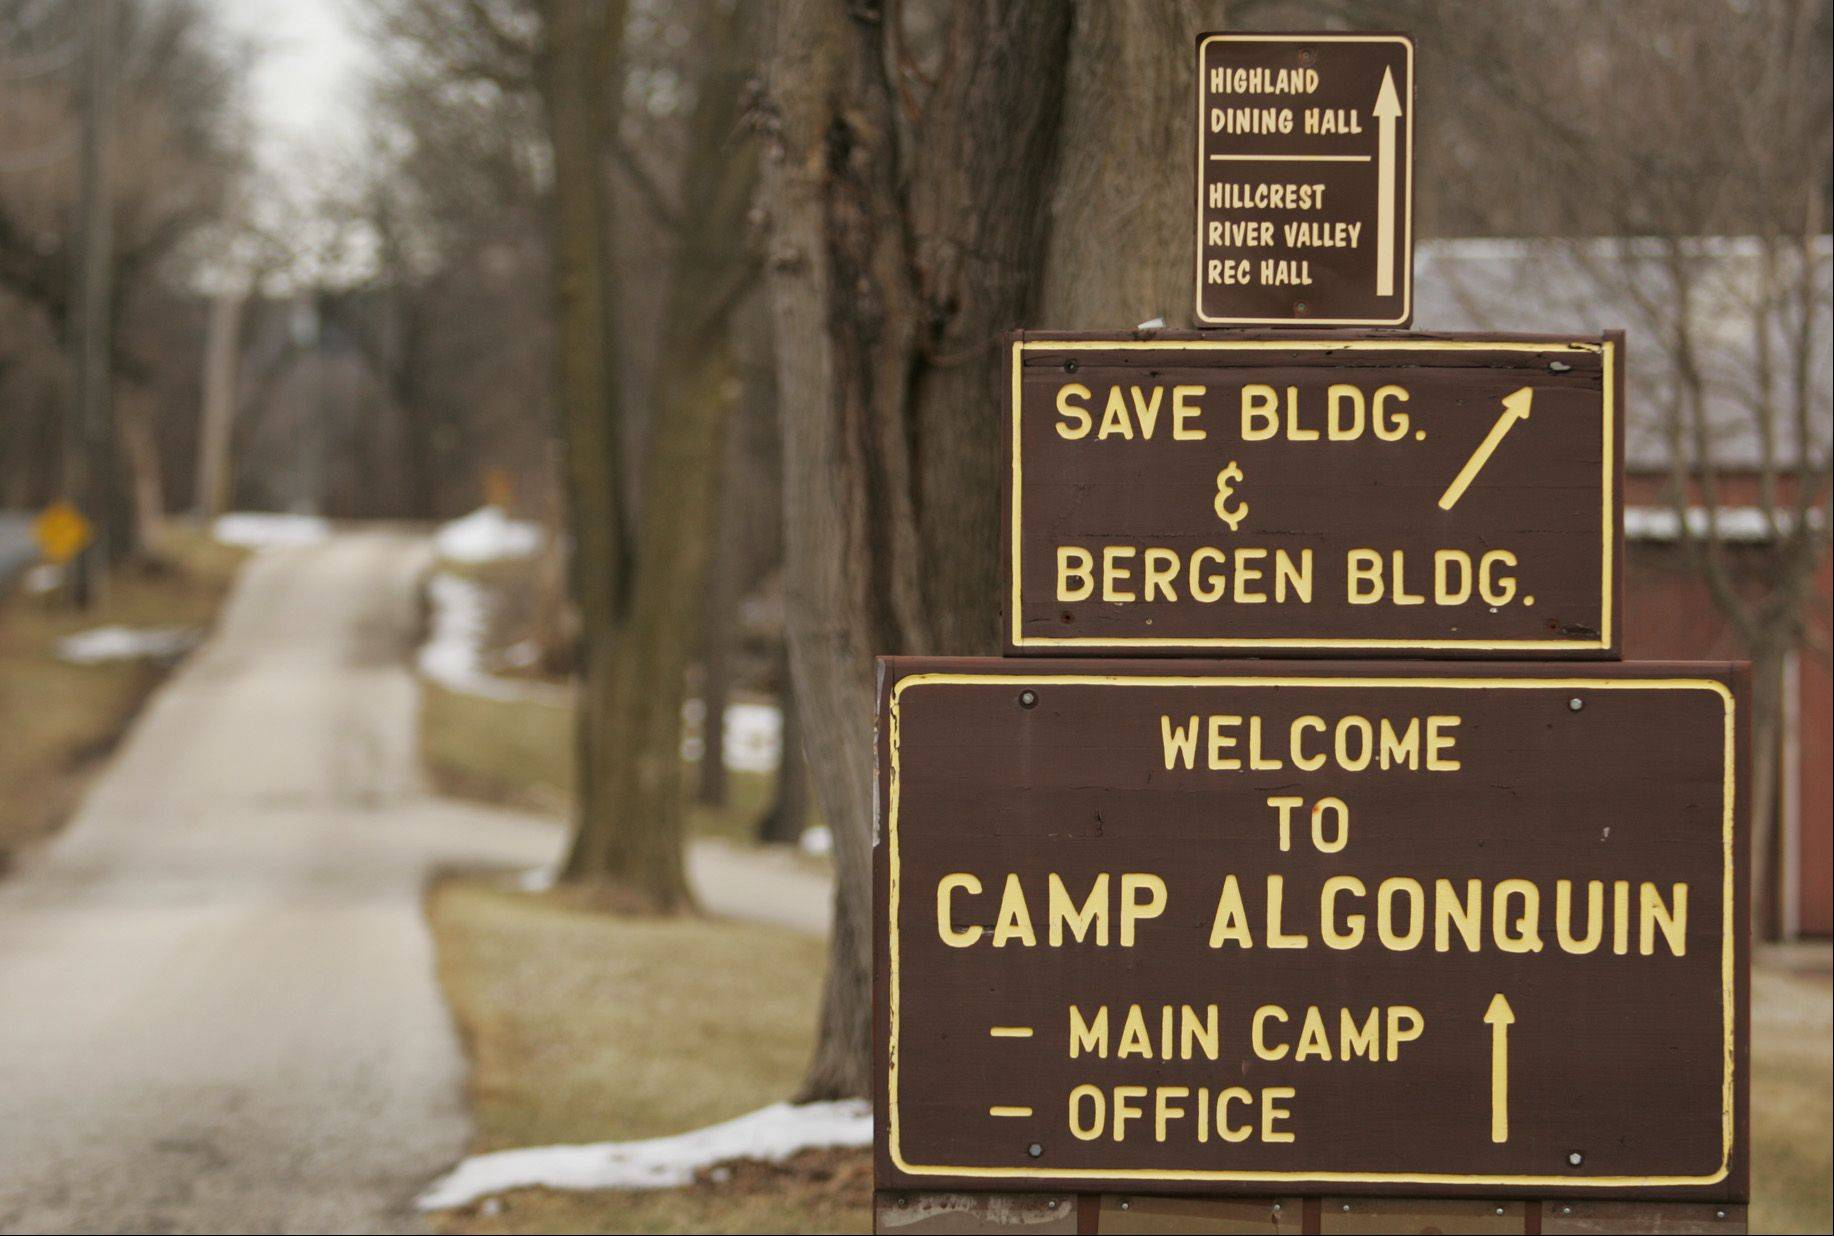 Camp Algonquin closed in March, and McHenry County Conservation District officials will decide what to do with the 116-acre site as part of a master plan for the 395-acre Fox Bluff Conservation Area.